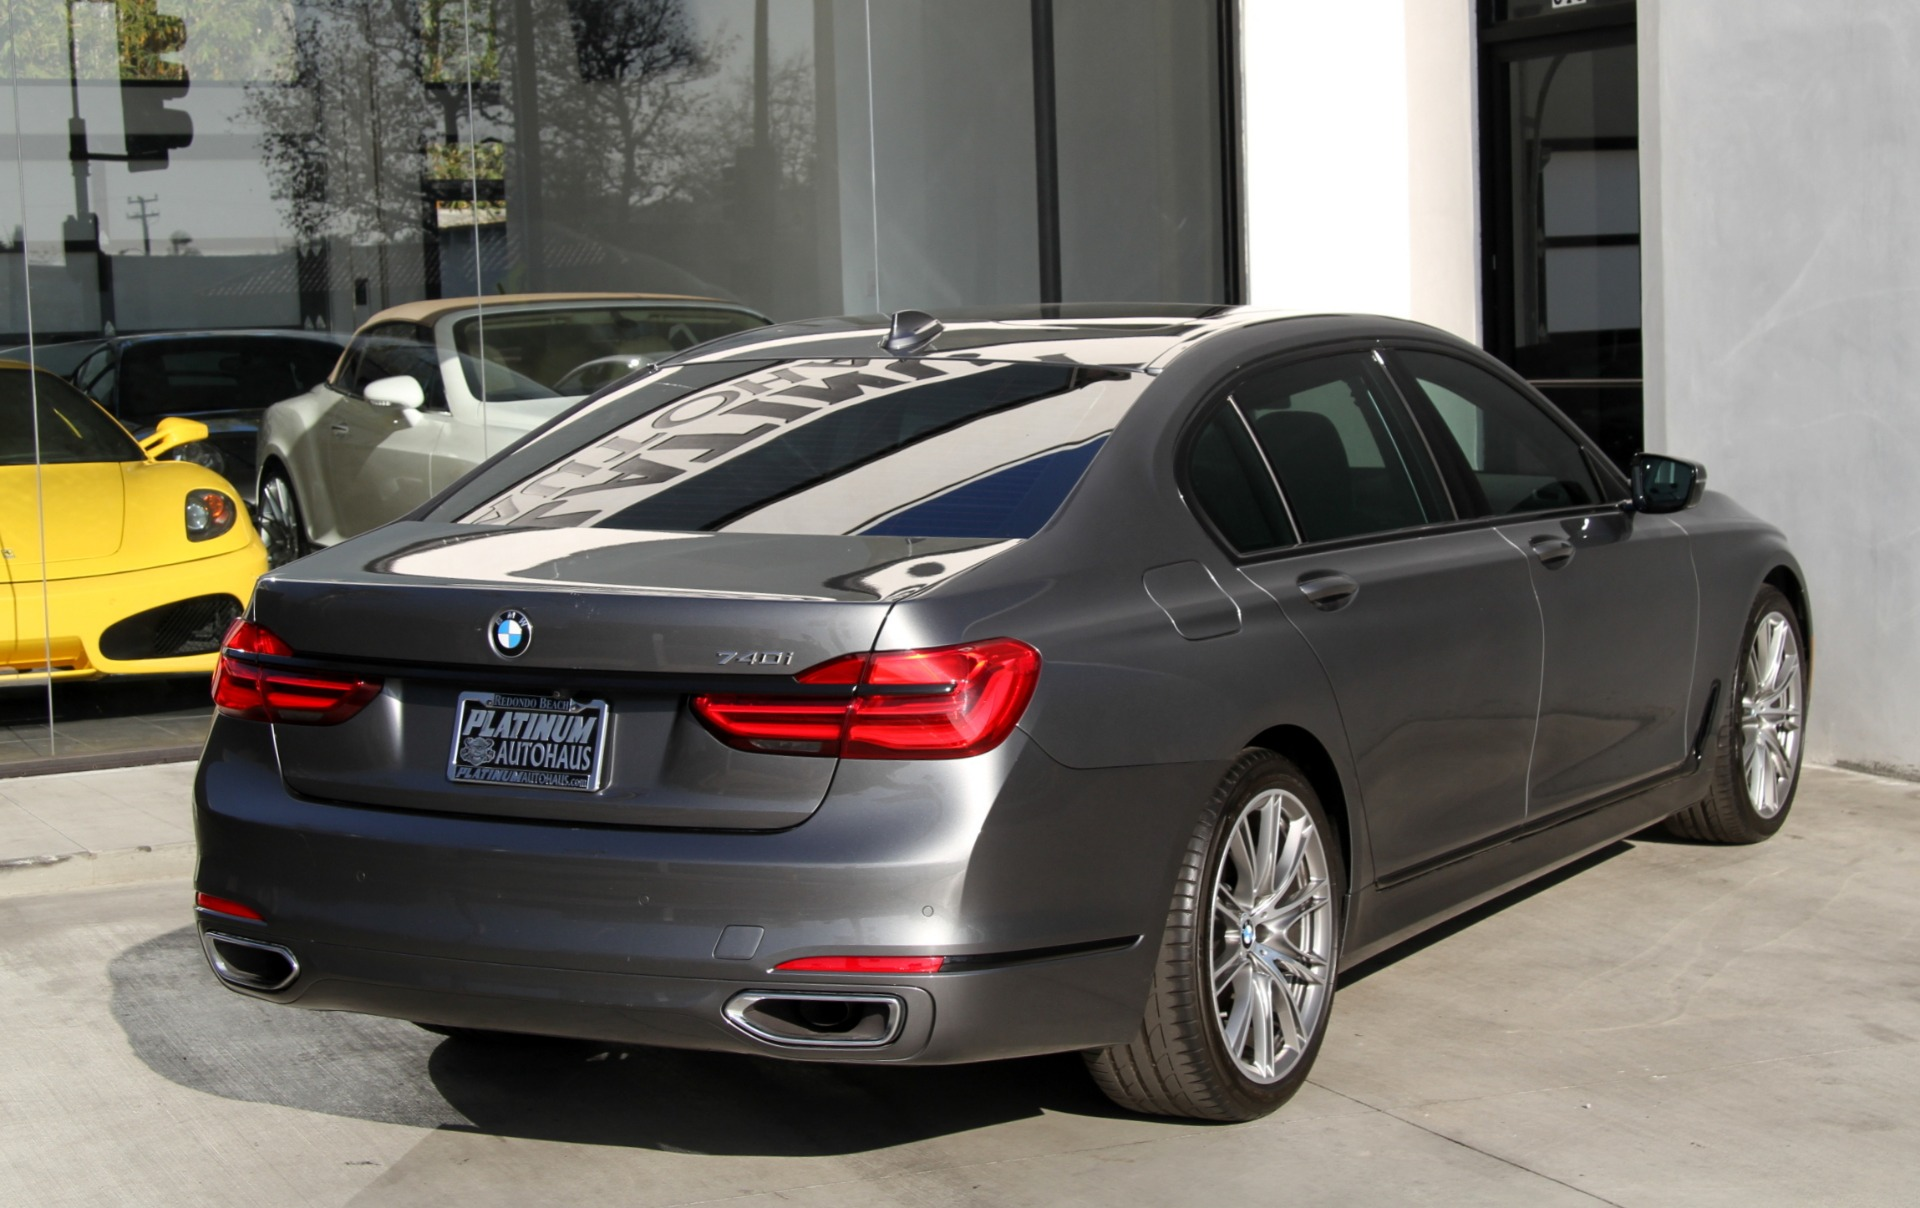 Bmw Dealer Near Me >> 2016 BMW 7 Series 740i Stock # 6074 for sale near Redondo Beach, CA | CA BMW Dealer